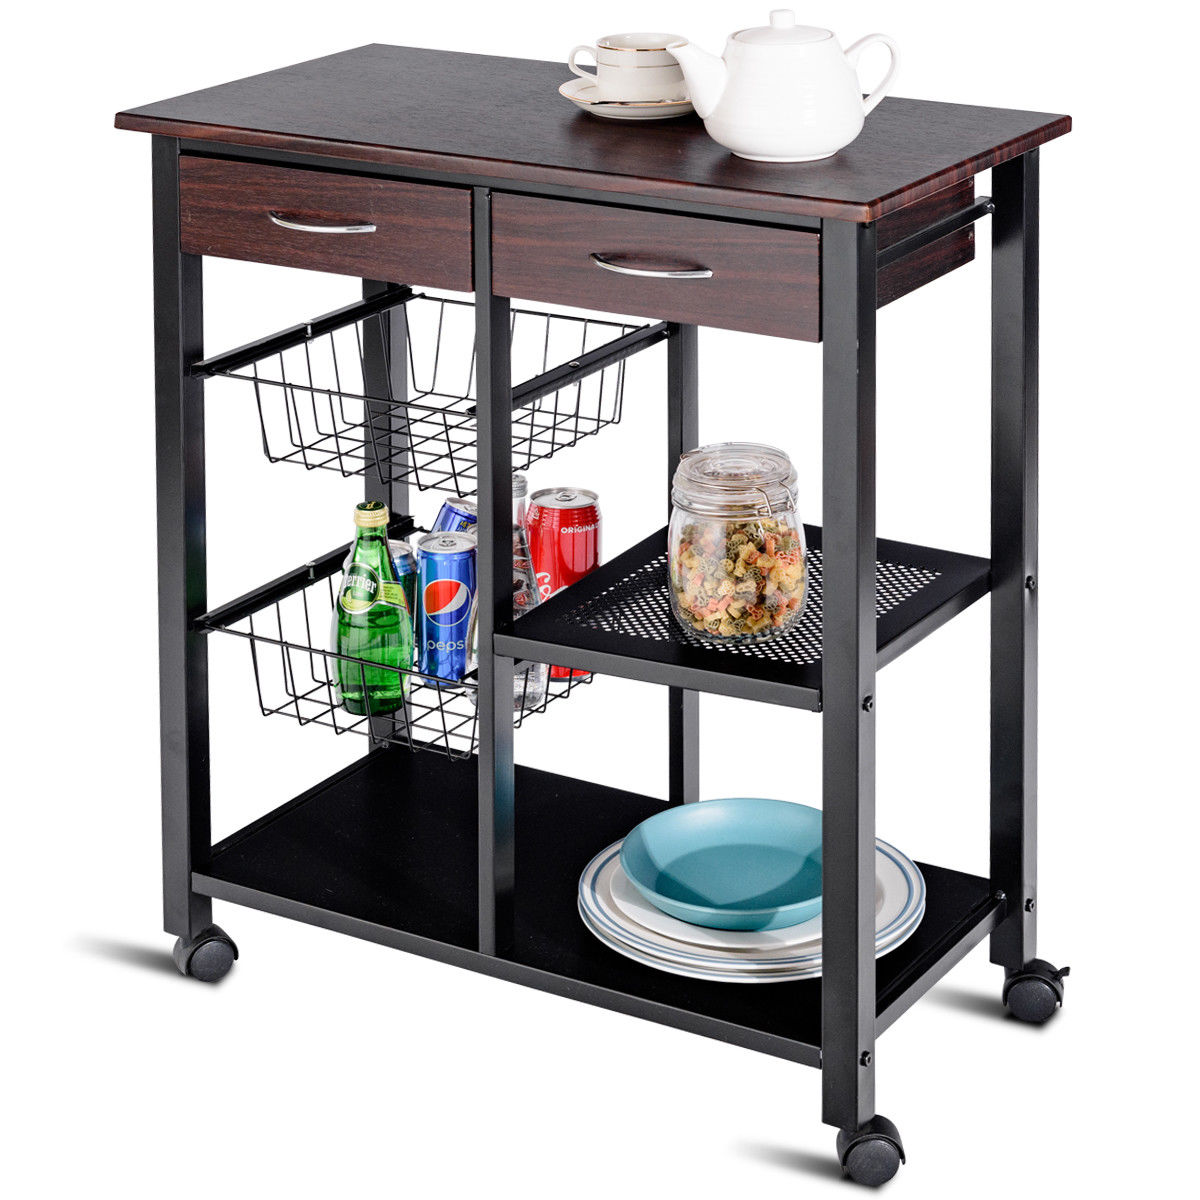 rolling cart for kitchen cleaning products islands carts walmart com product image costway trolley storage island utility metal frame w drawer basket